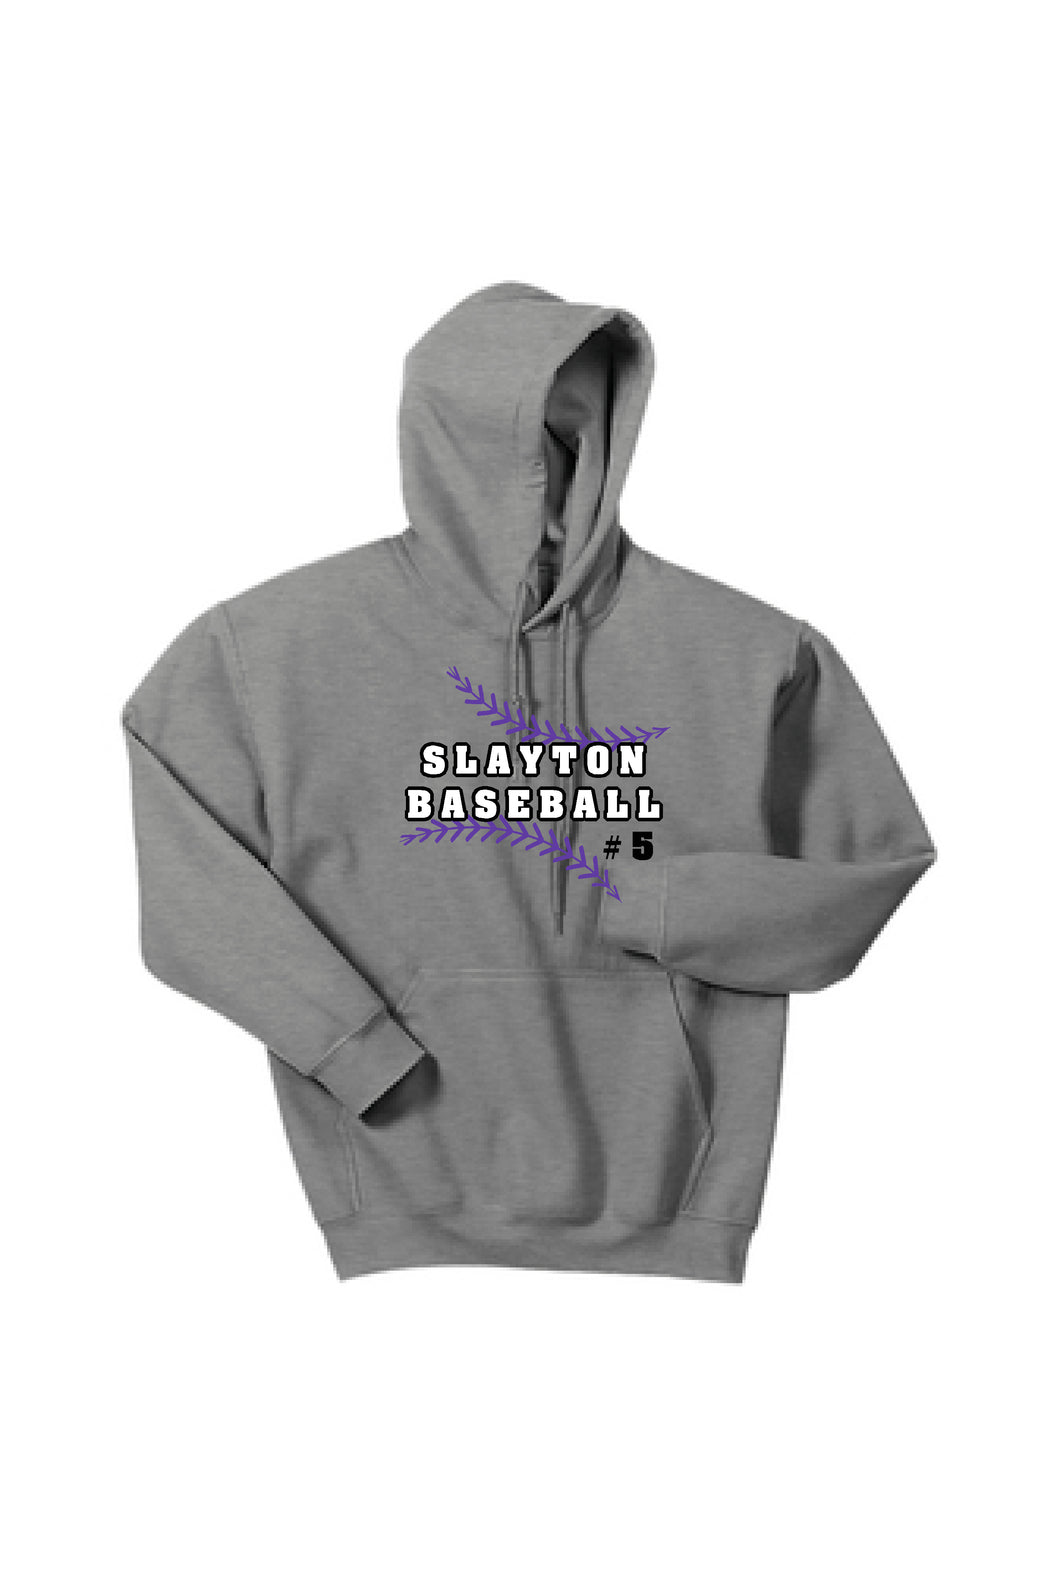 Slayton Baseball Gildan Hooded Sweatshirt